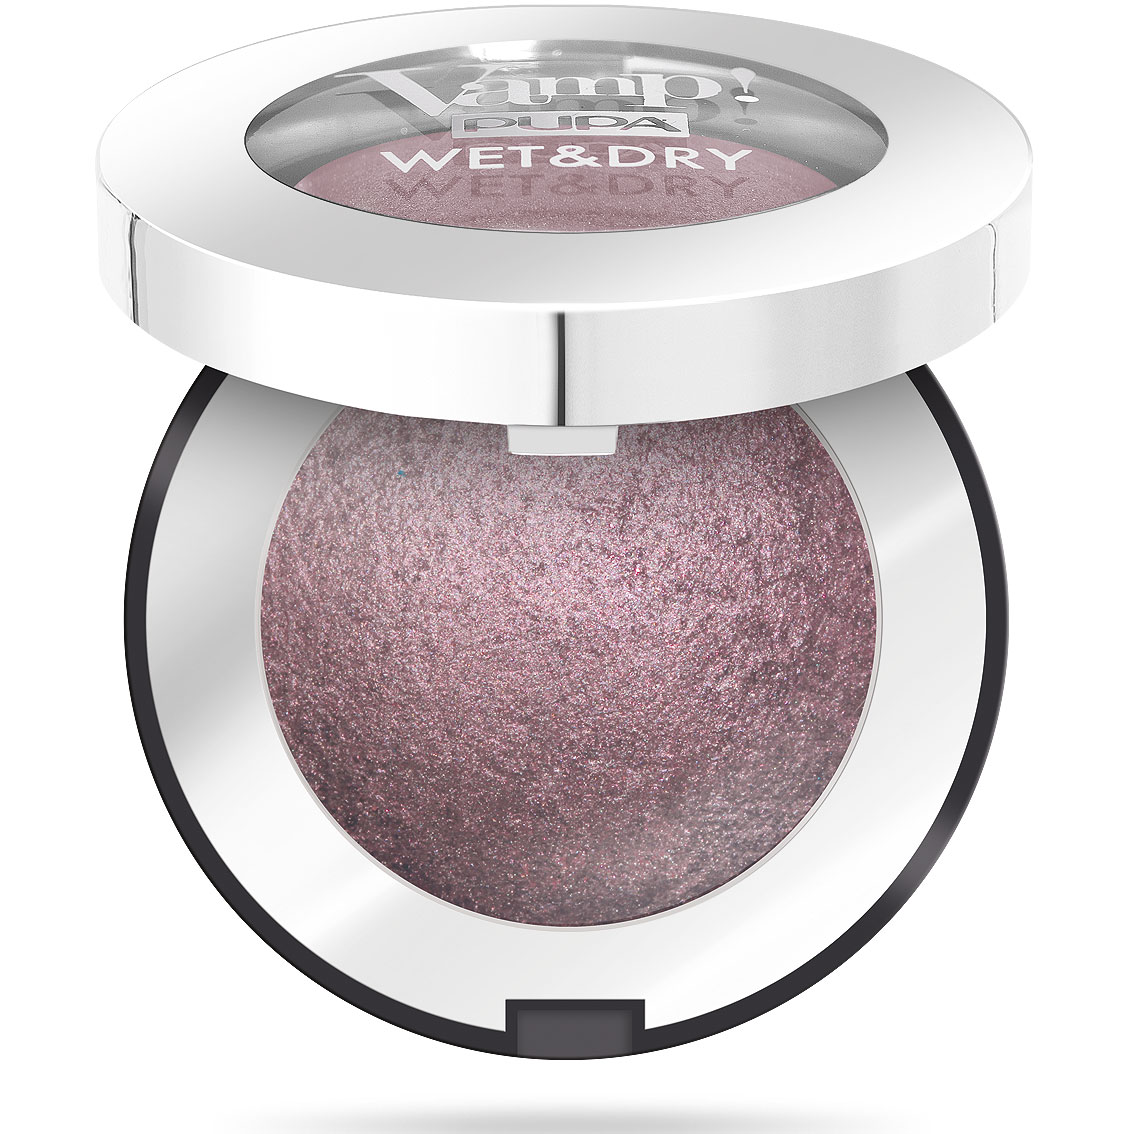 Pupa Vamp! Wet & Dry Ombretto n. 204  intense mauve